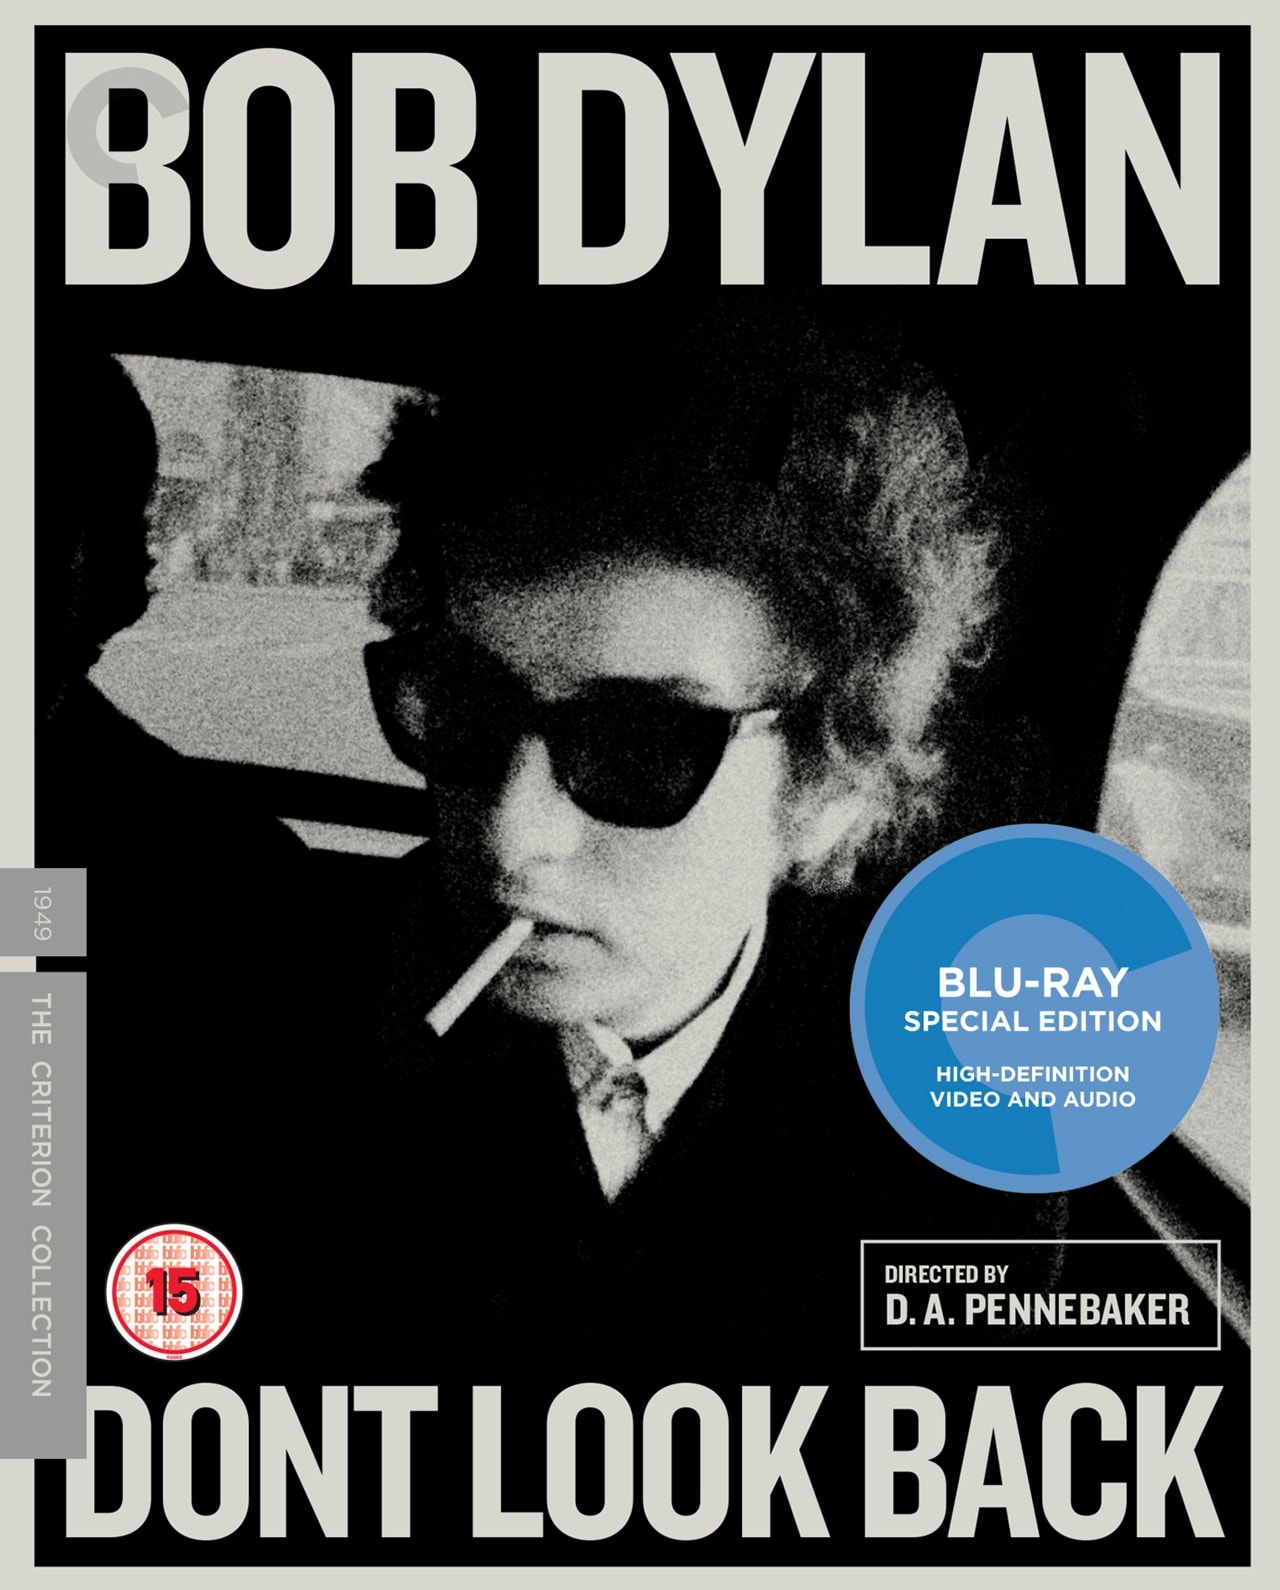 Bob Dylan: Don't Look Back - The Criterion Collection - 1